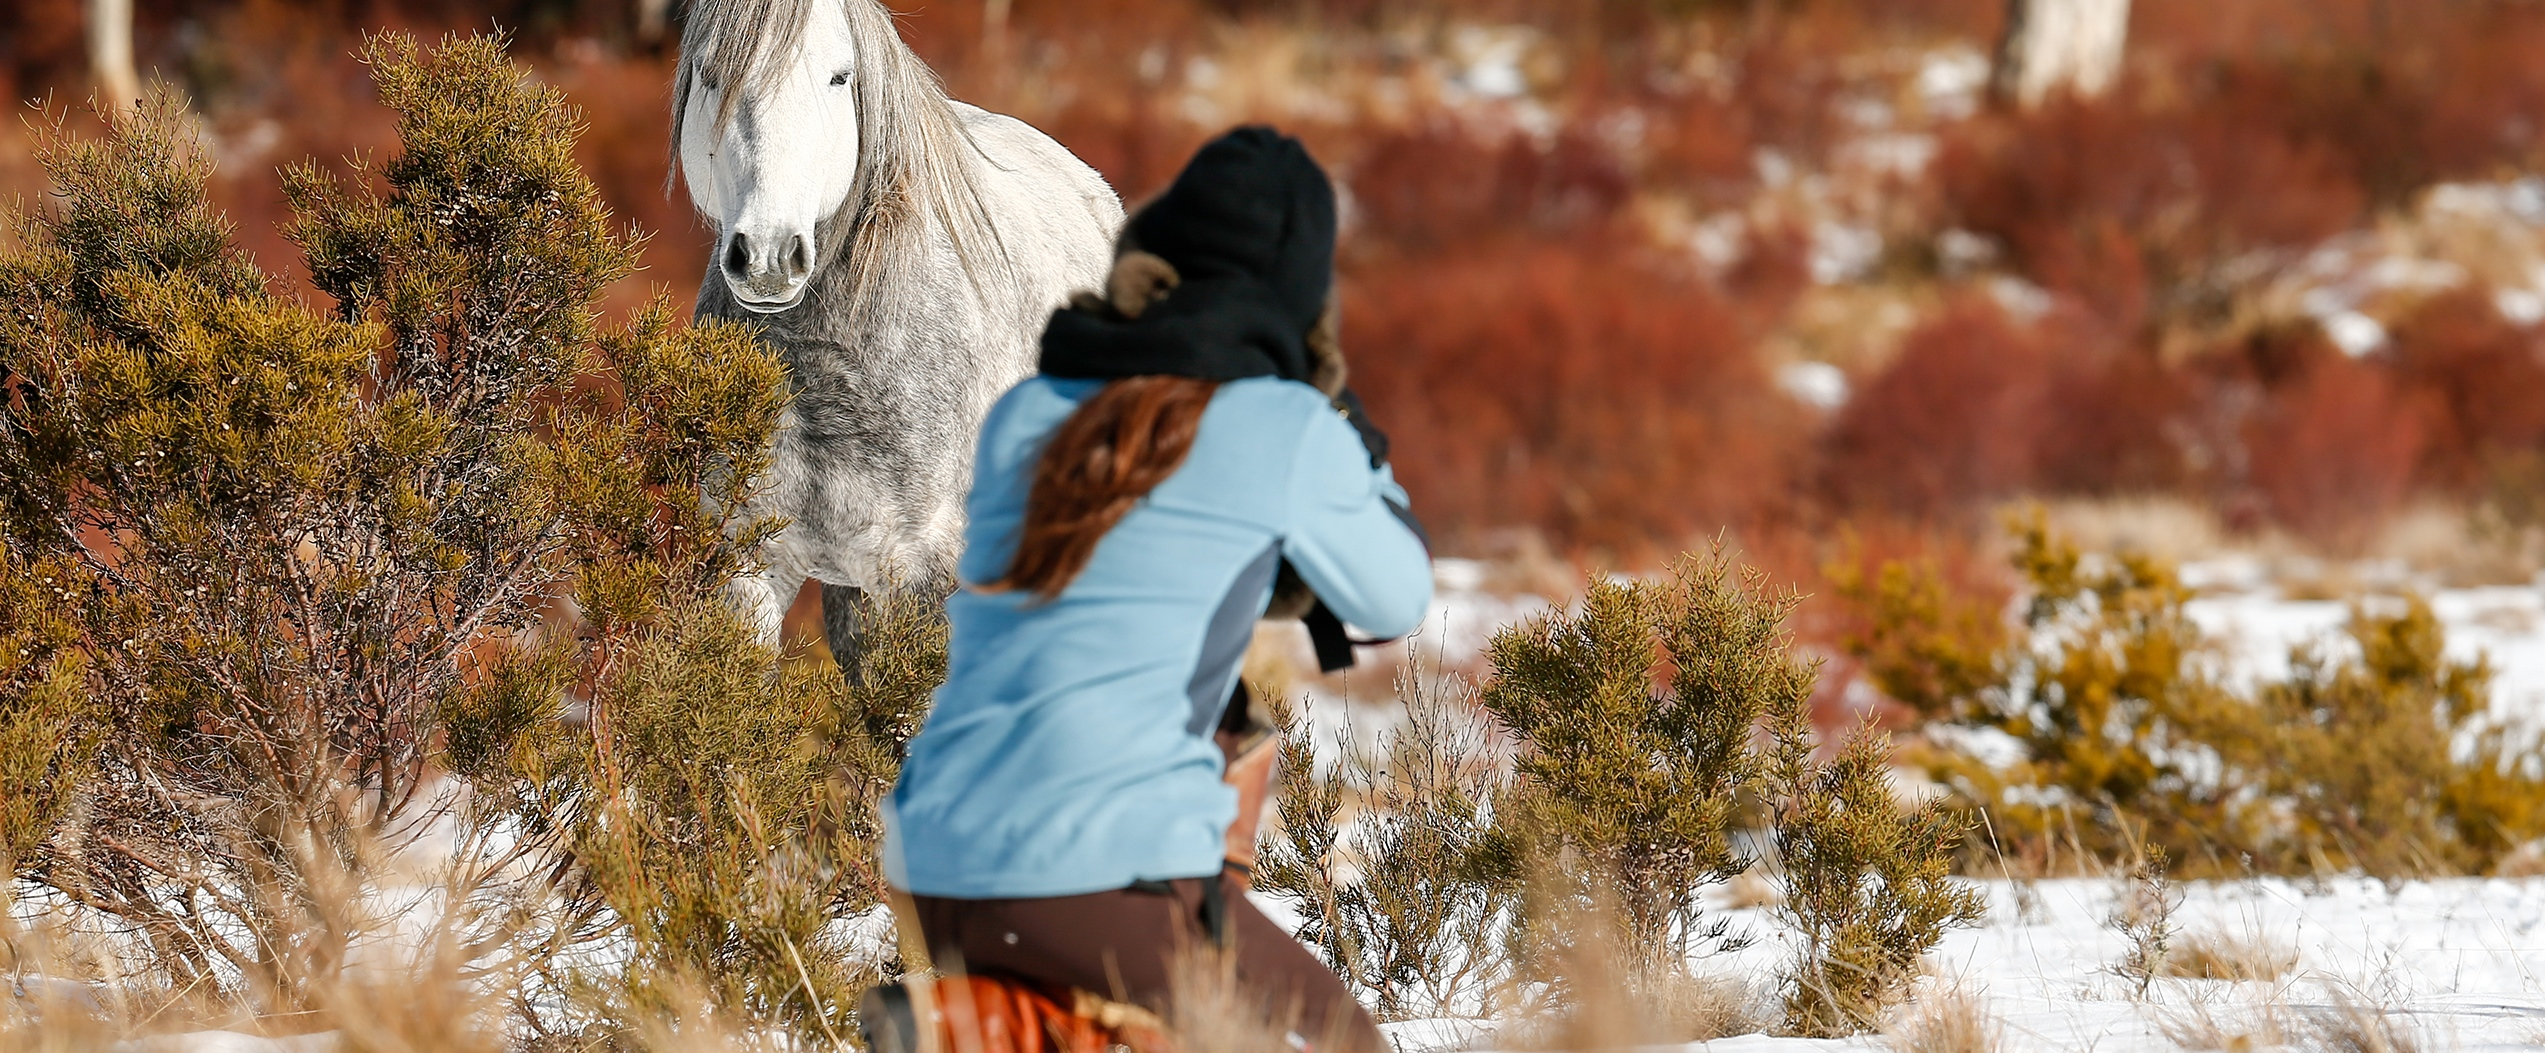 Victory's Herd: Australian Snowy Mountains, Wild Horses of the World